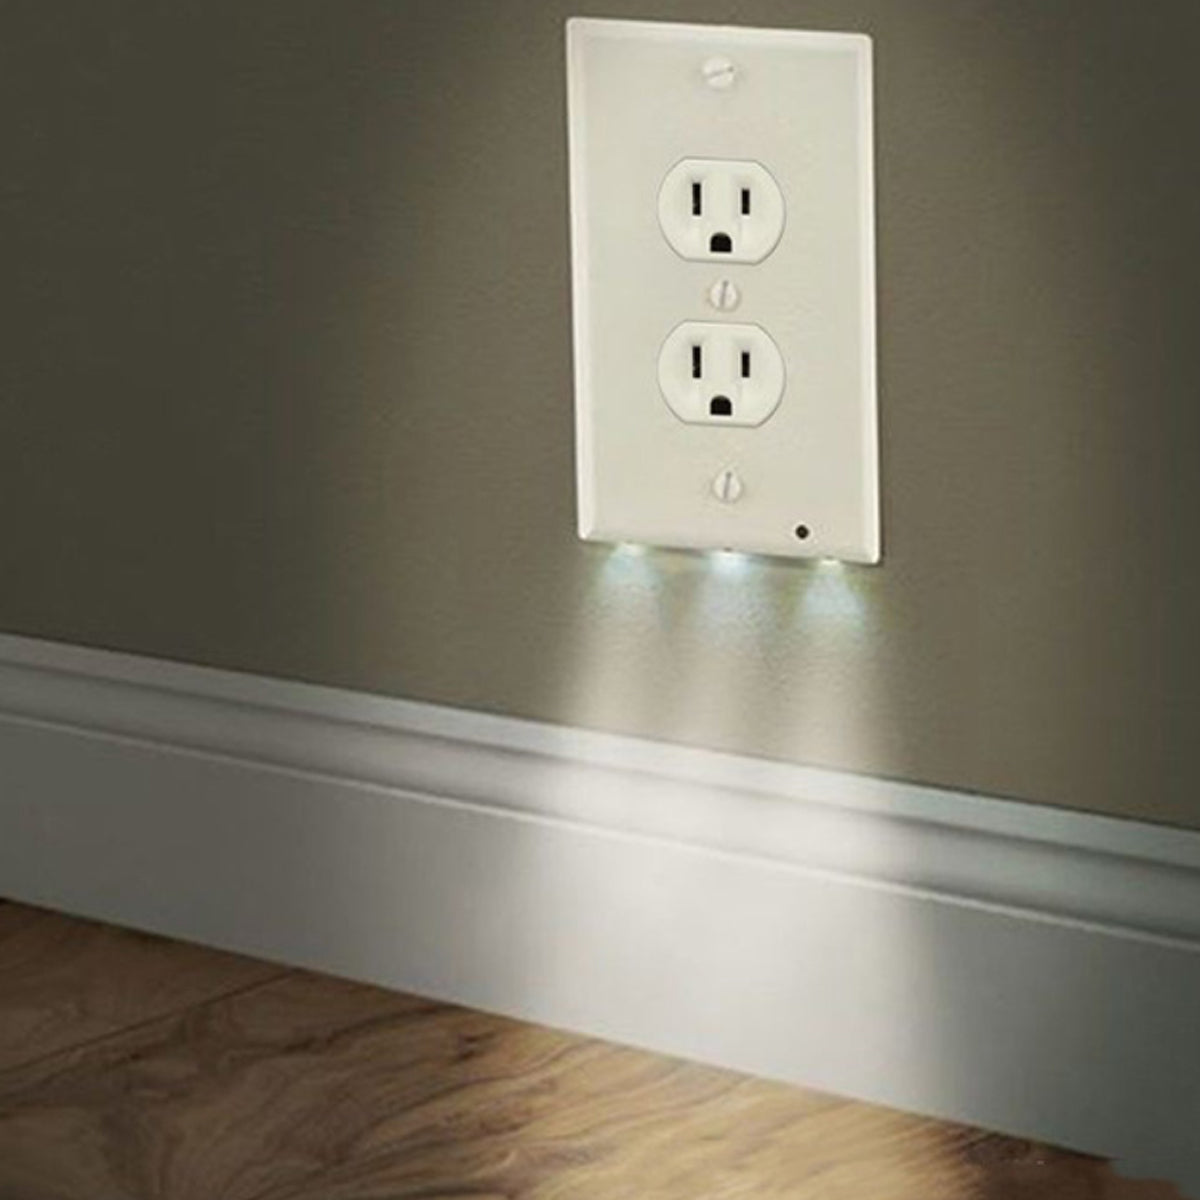 shopify-Path Lighter Auto Motion Wall Plate LED Light  2- PACK-15